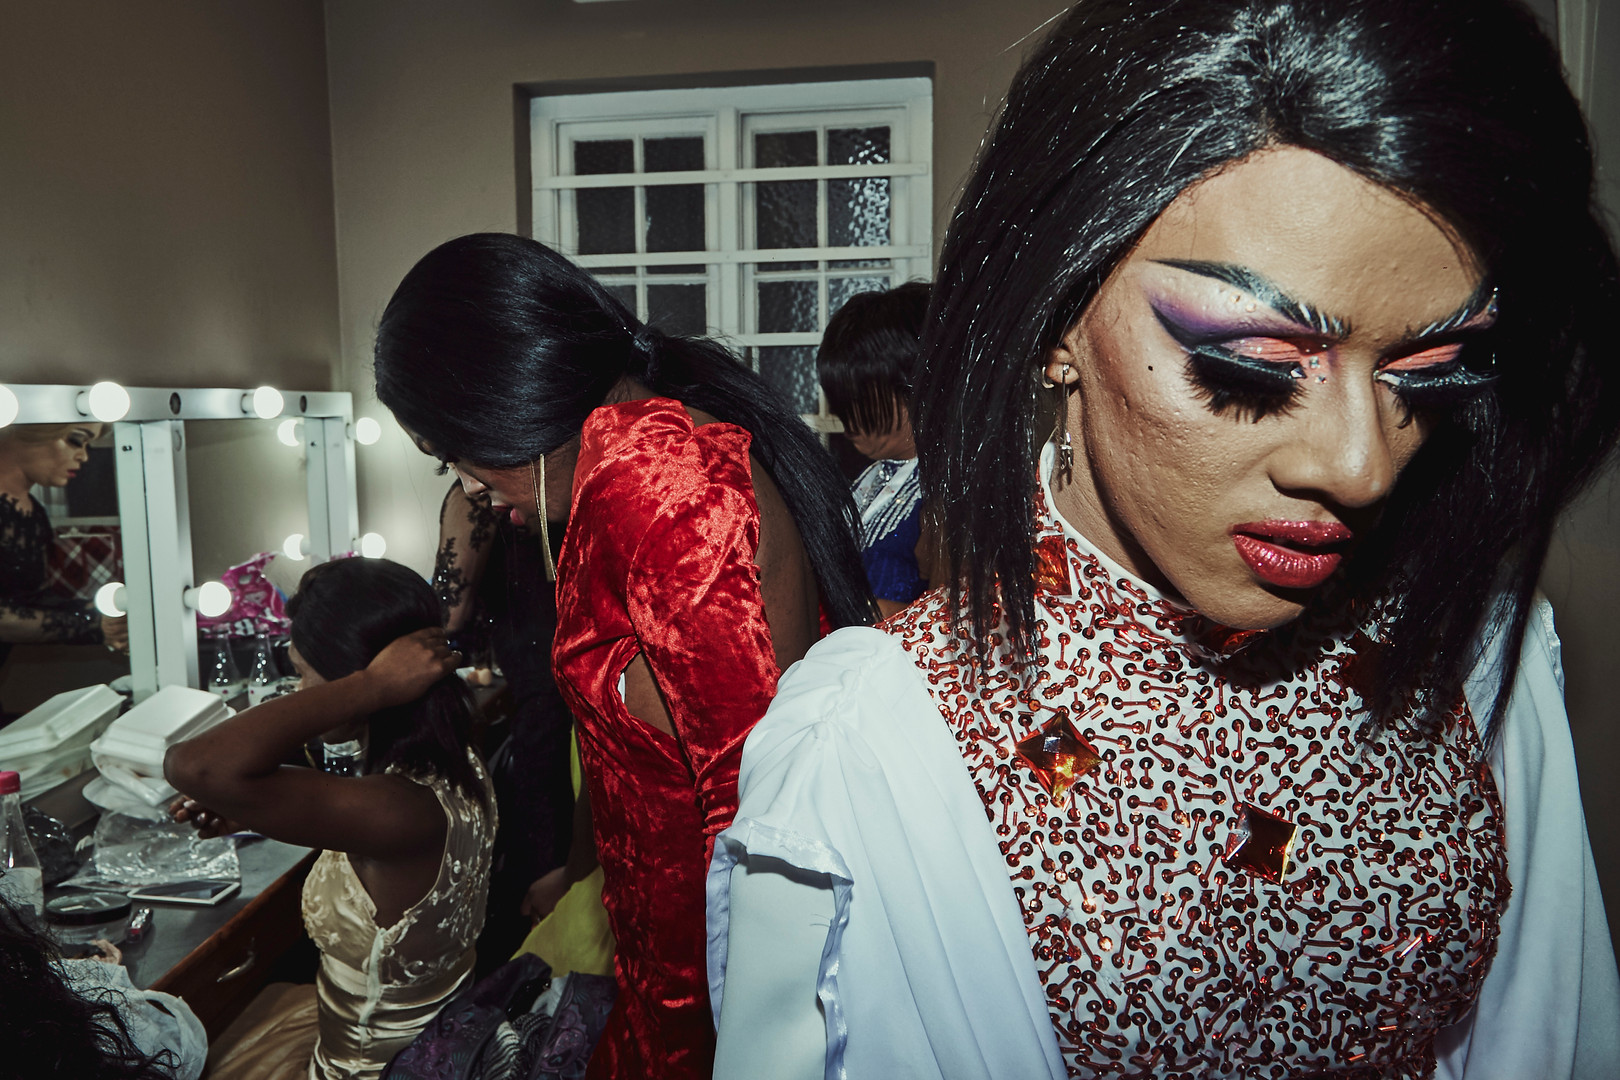 Ina Propriette exits her dressing room at the Port Elizabeth Opera House where the Miss Drag South Africa Pageant was held in September 2018. She was one of two Cape Town drag artists who competed for the title and she was crowned first runner up during the crowning gala.